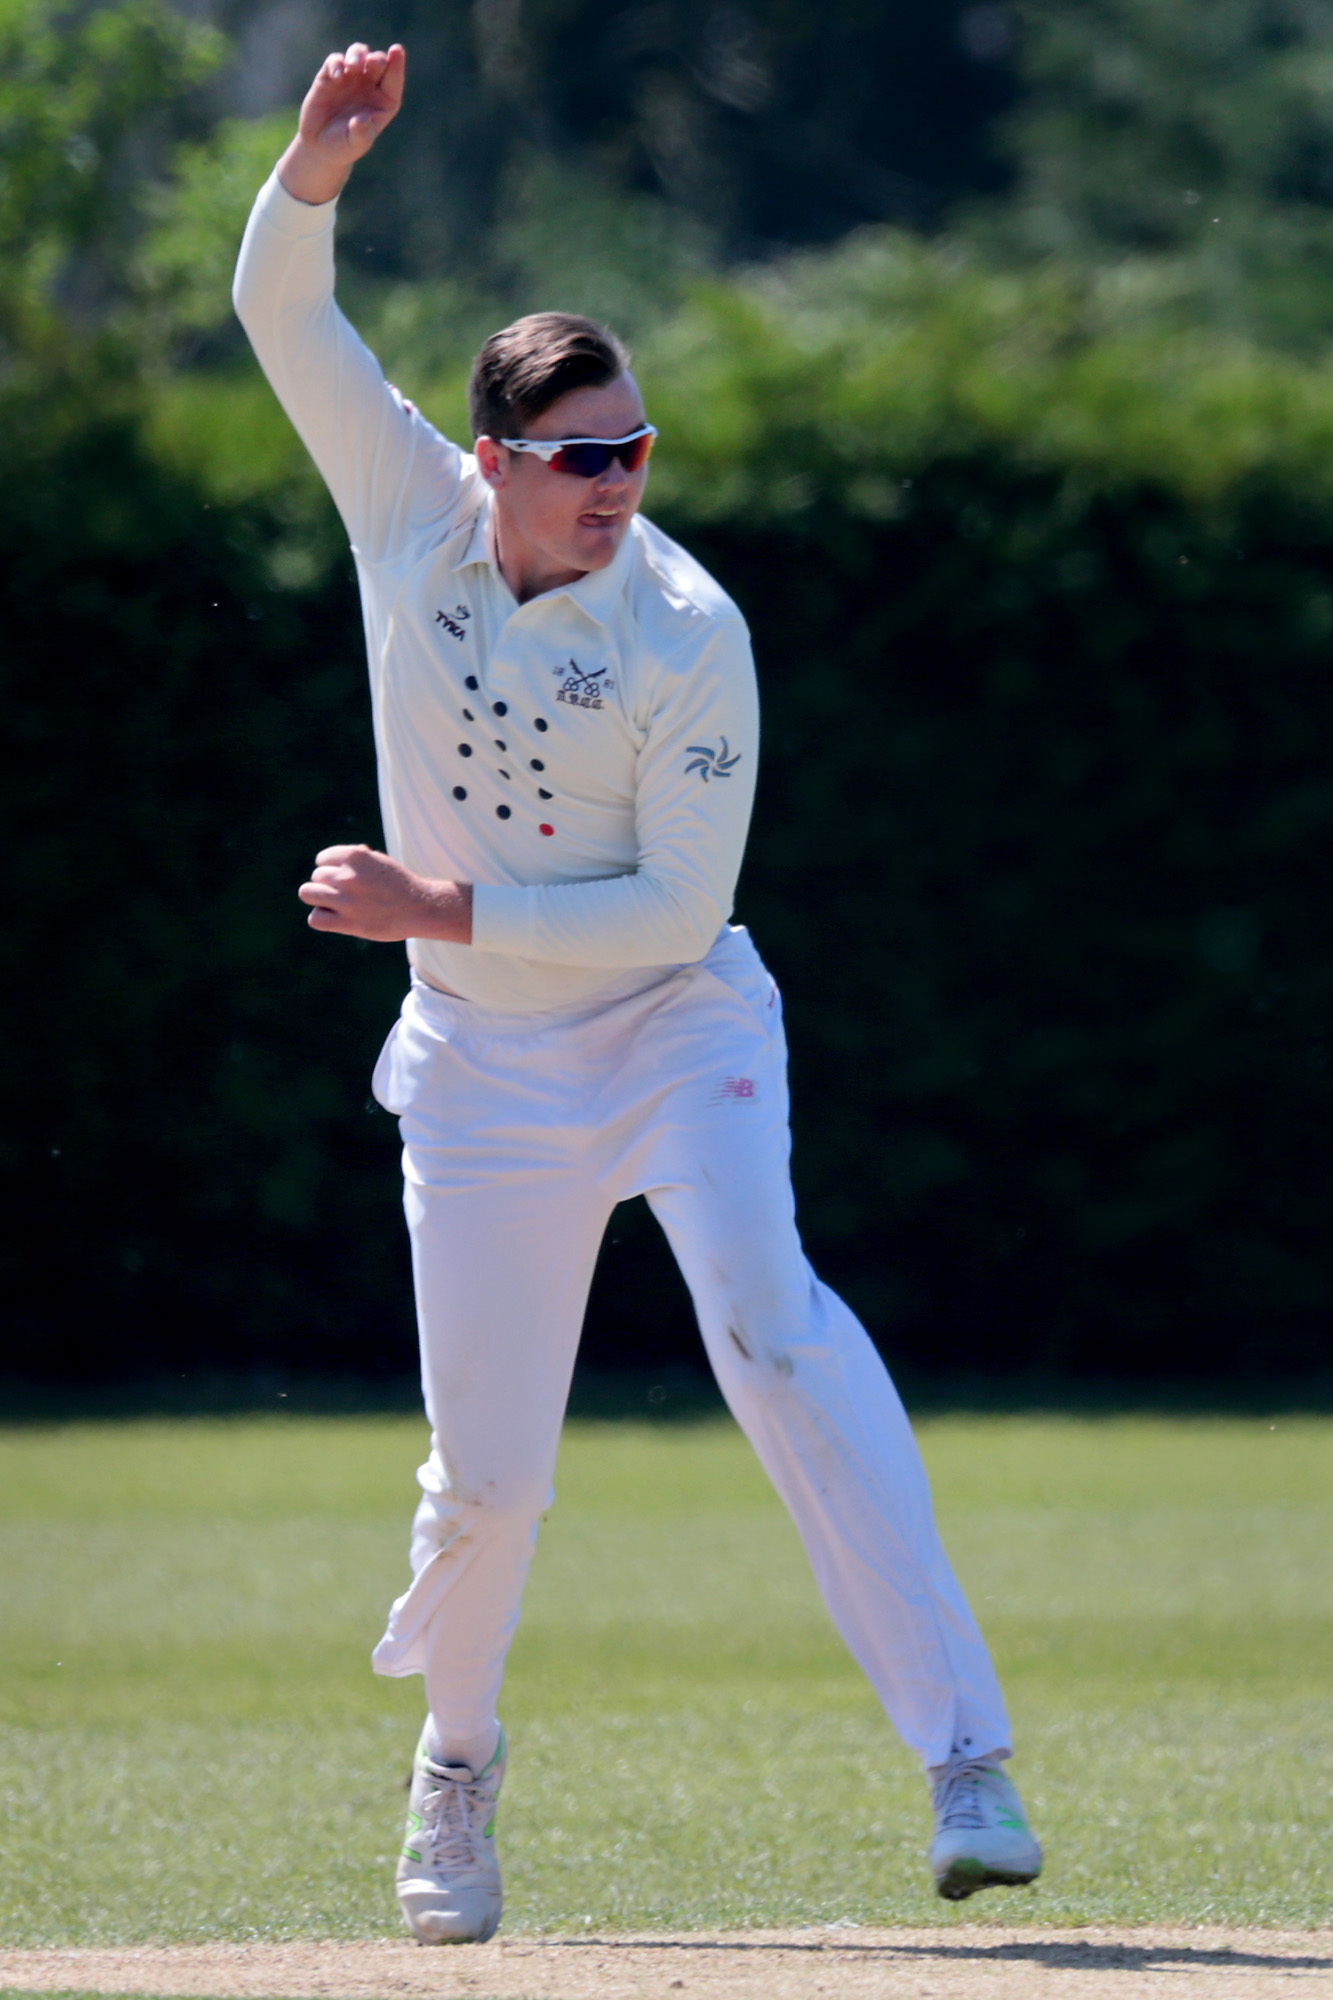 FINE DISPLAY: Dan Moriarty took 4-29 and scored 30 in Aston Rowant's victory over Banbury